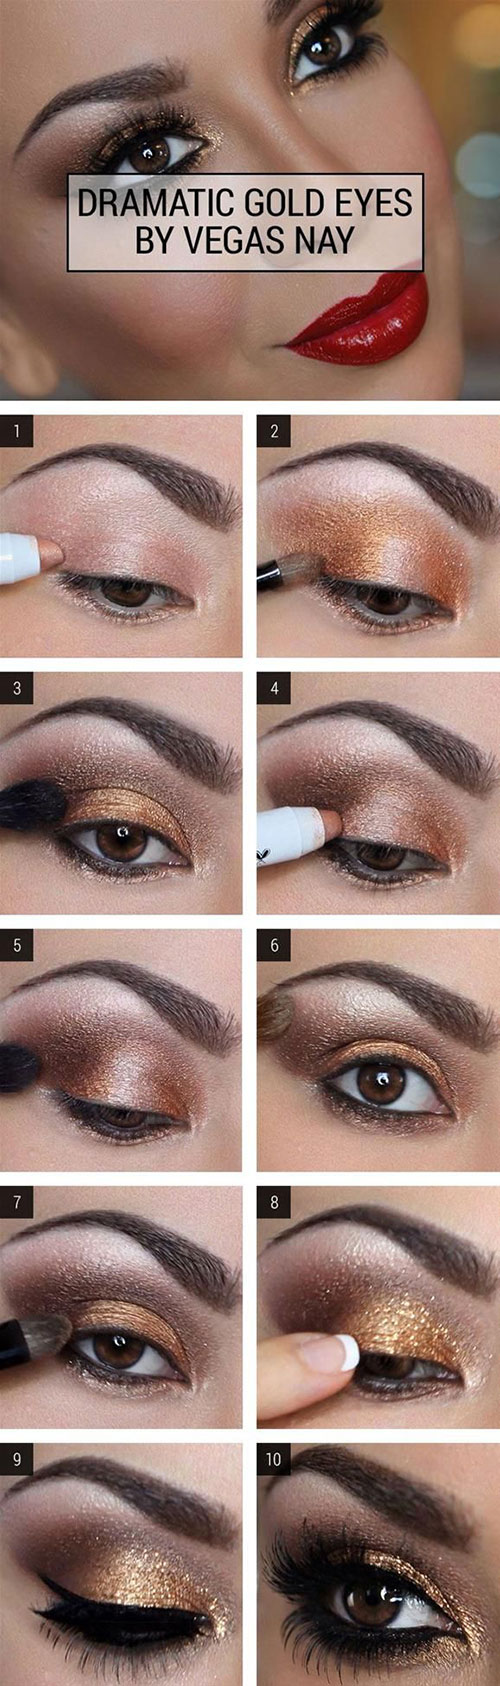 Assez How To Do Smokey Eye Makeup? - Top 10 Tutorial Pictures For 2017 NP94